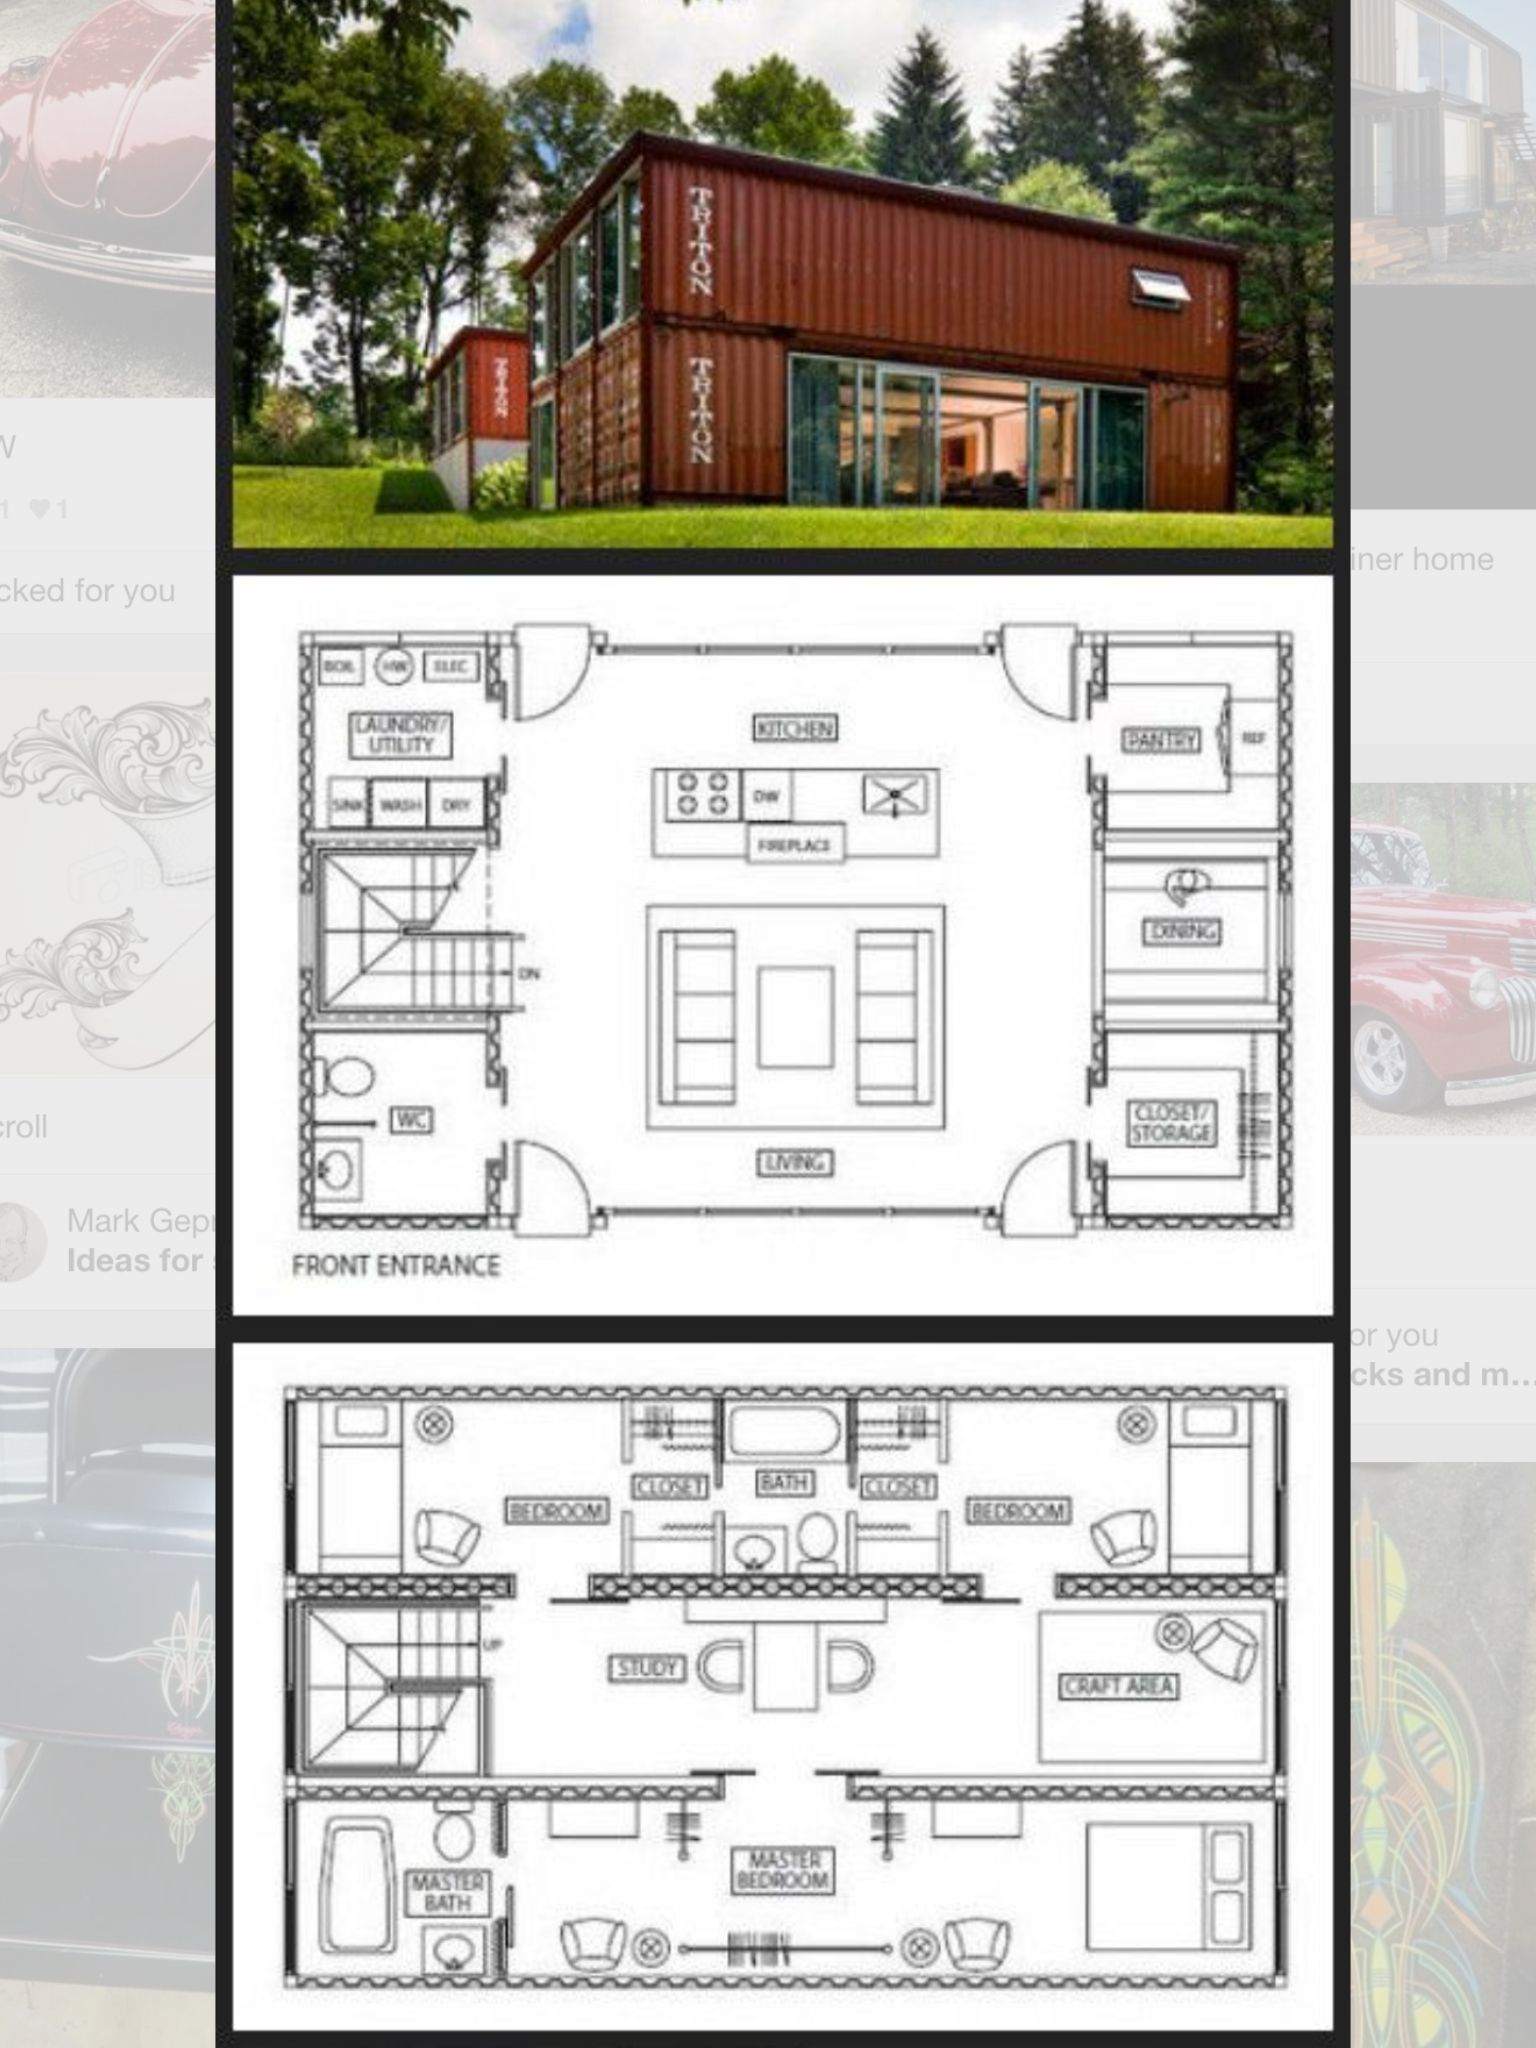 Container home container home pinterest house tiny houses and ships - Maison container ...